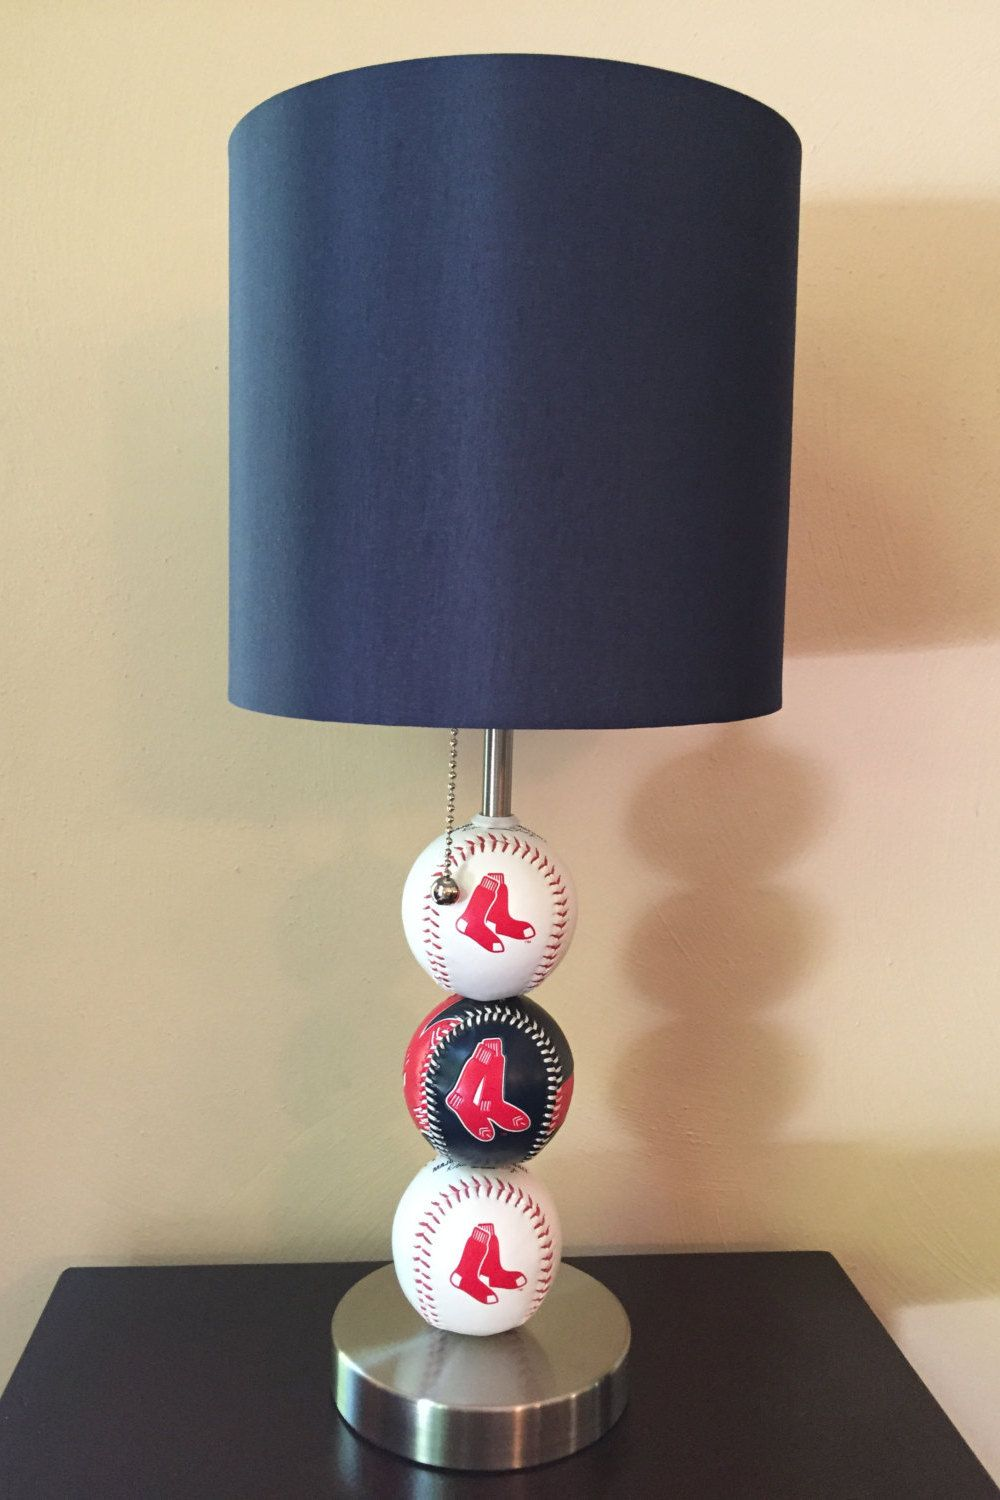 Retro mlb team baseball table lamp limited baseball table and retro mlb team baseball table lamp limited geotapseo Image collections